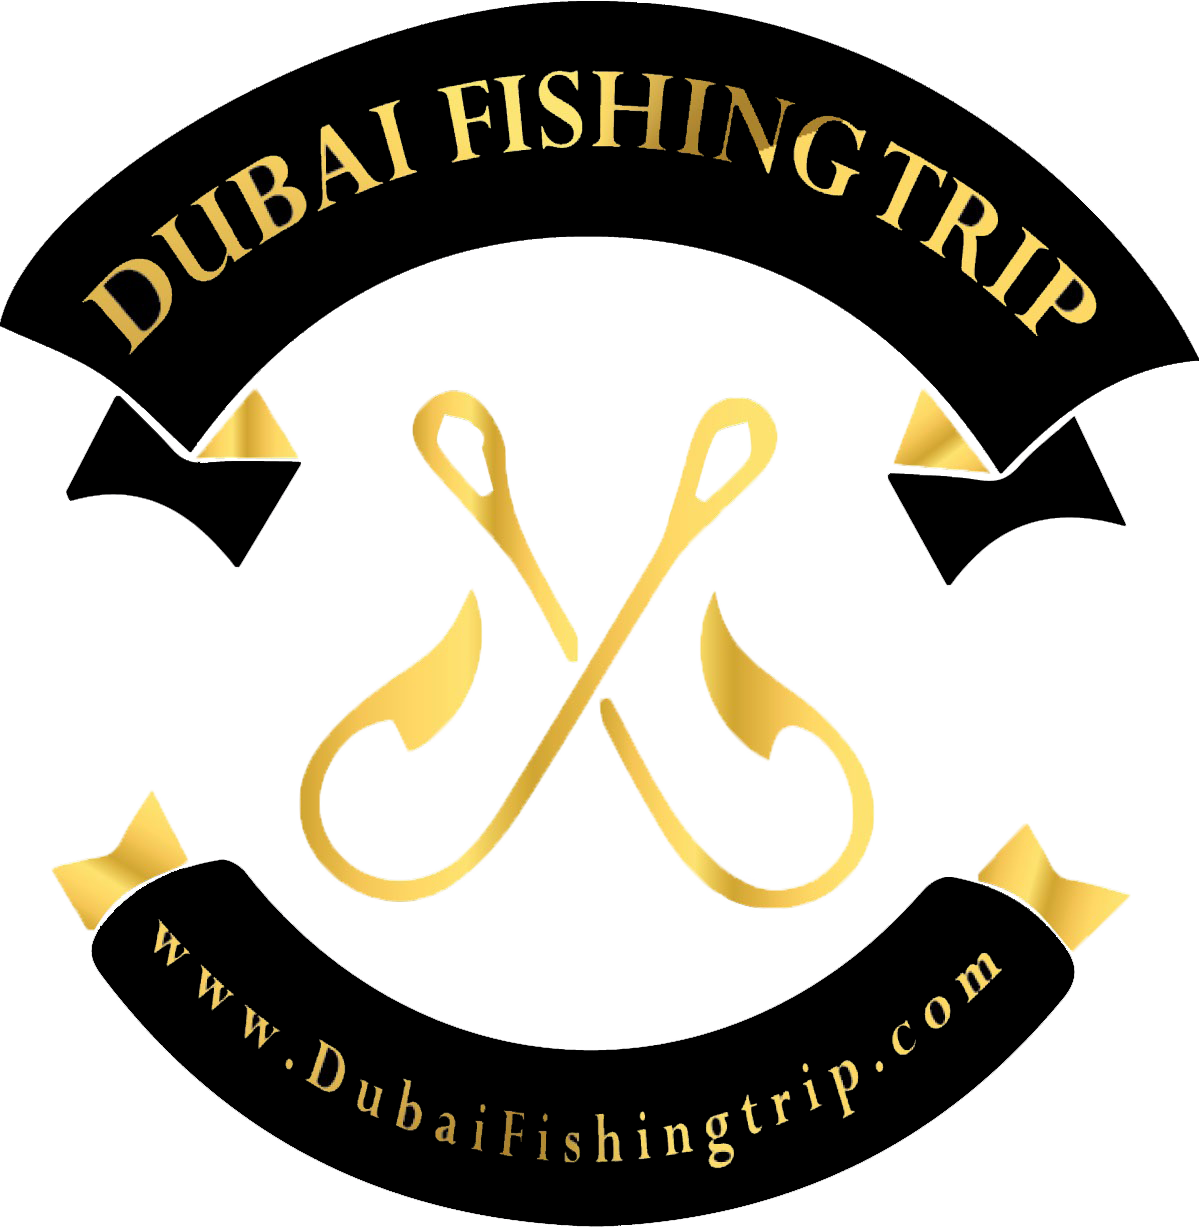 Dubai Fishing Trip